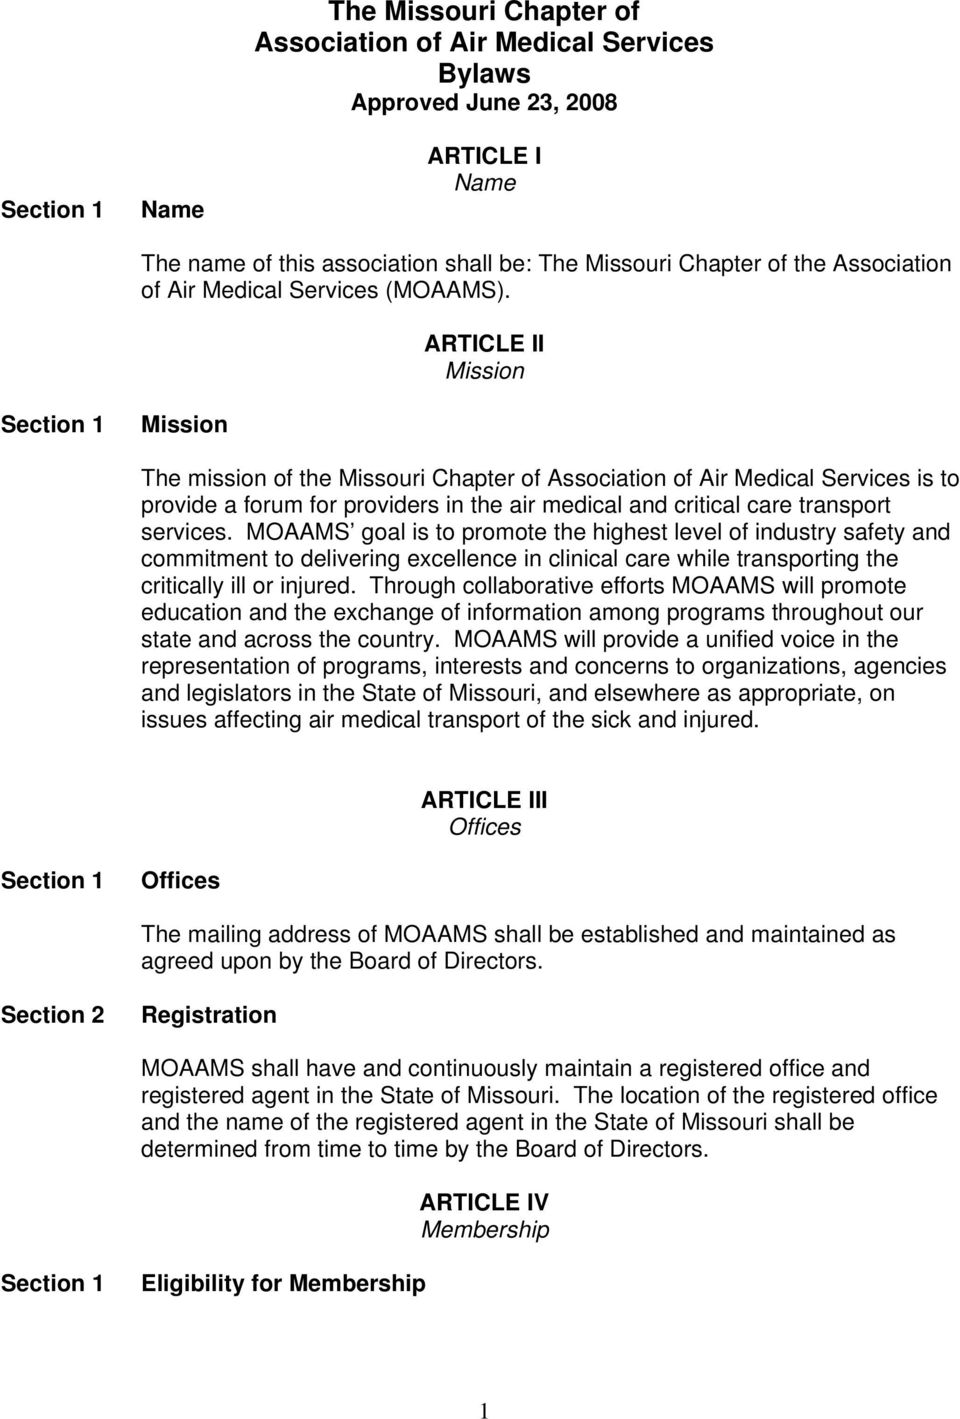 ARTICLE II Mission Mission The mission of the Missouri Chapter of Association of Air Medical Services is to provide a forum for providers in the air medical and critical care transport services.